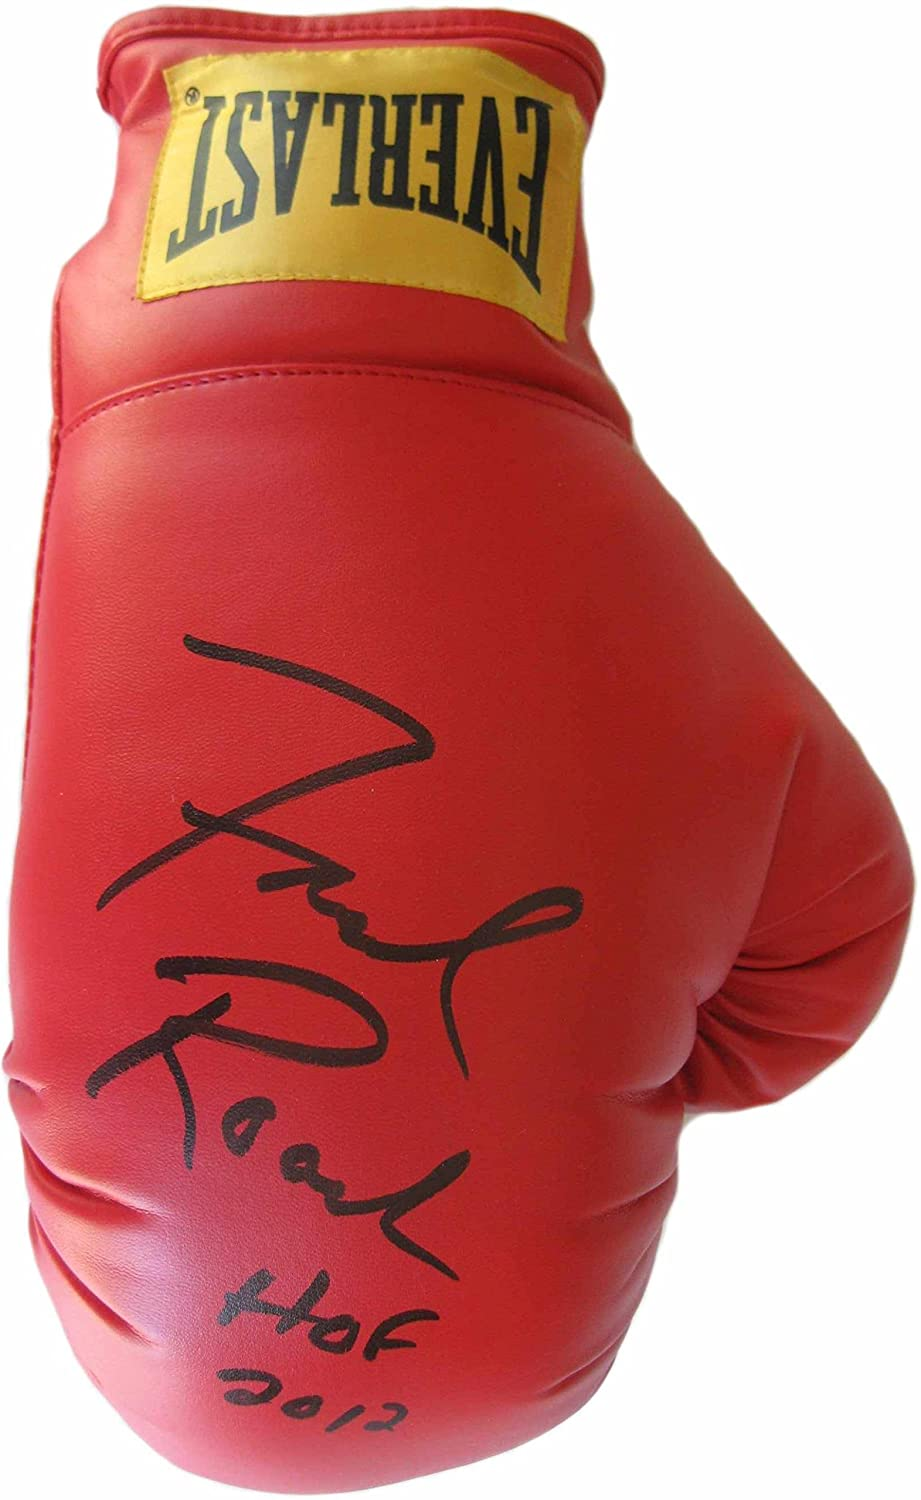 Freddie Roach, Signed, Autogrpahed, Everlast Boxing Glove, the Glove Comes with a COA and Proof Photo of Freddie Signing the Glove.